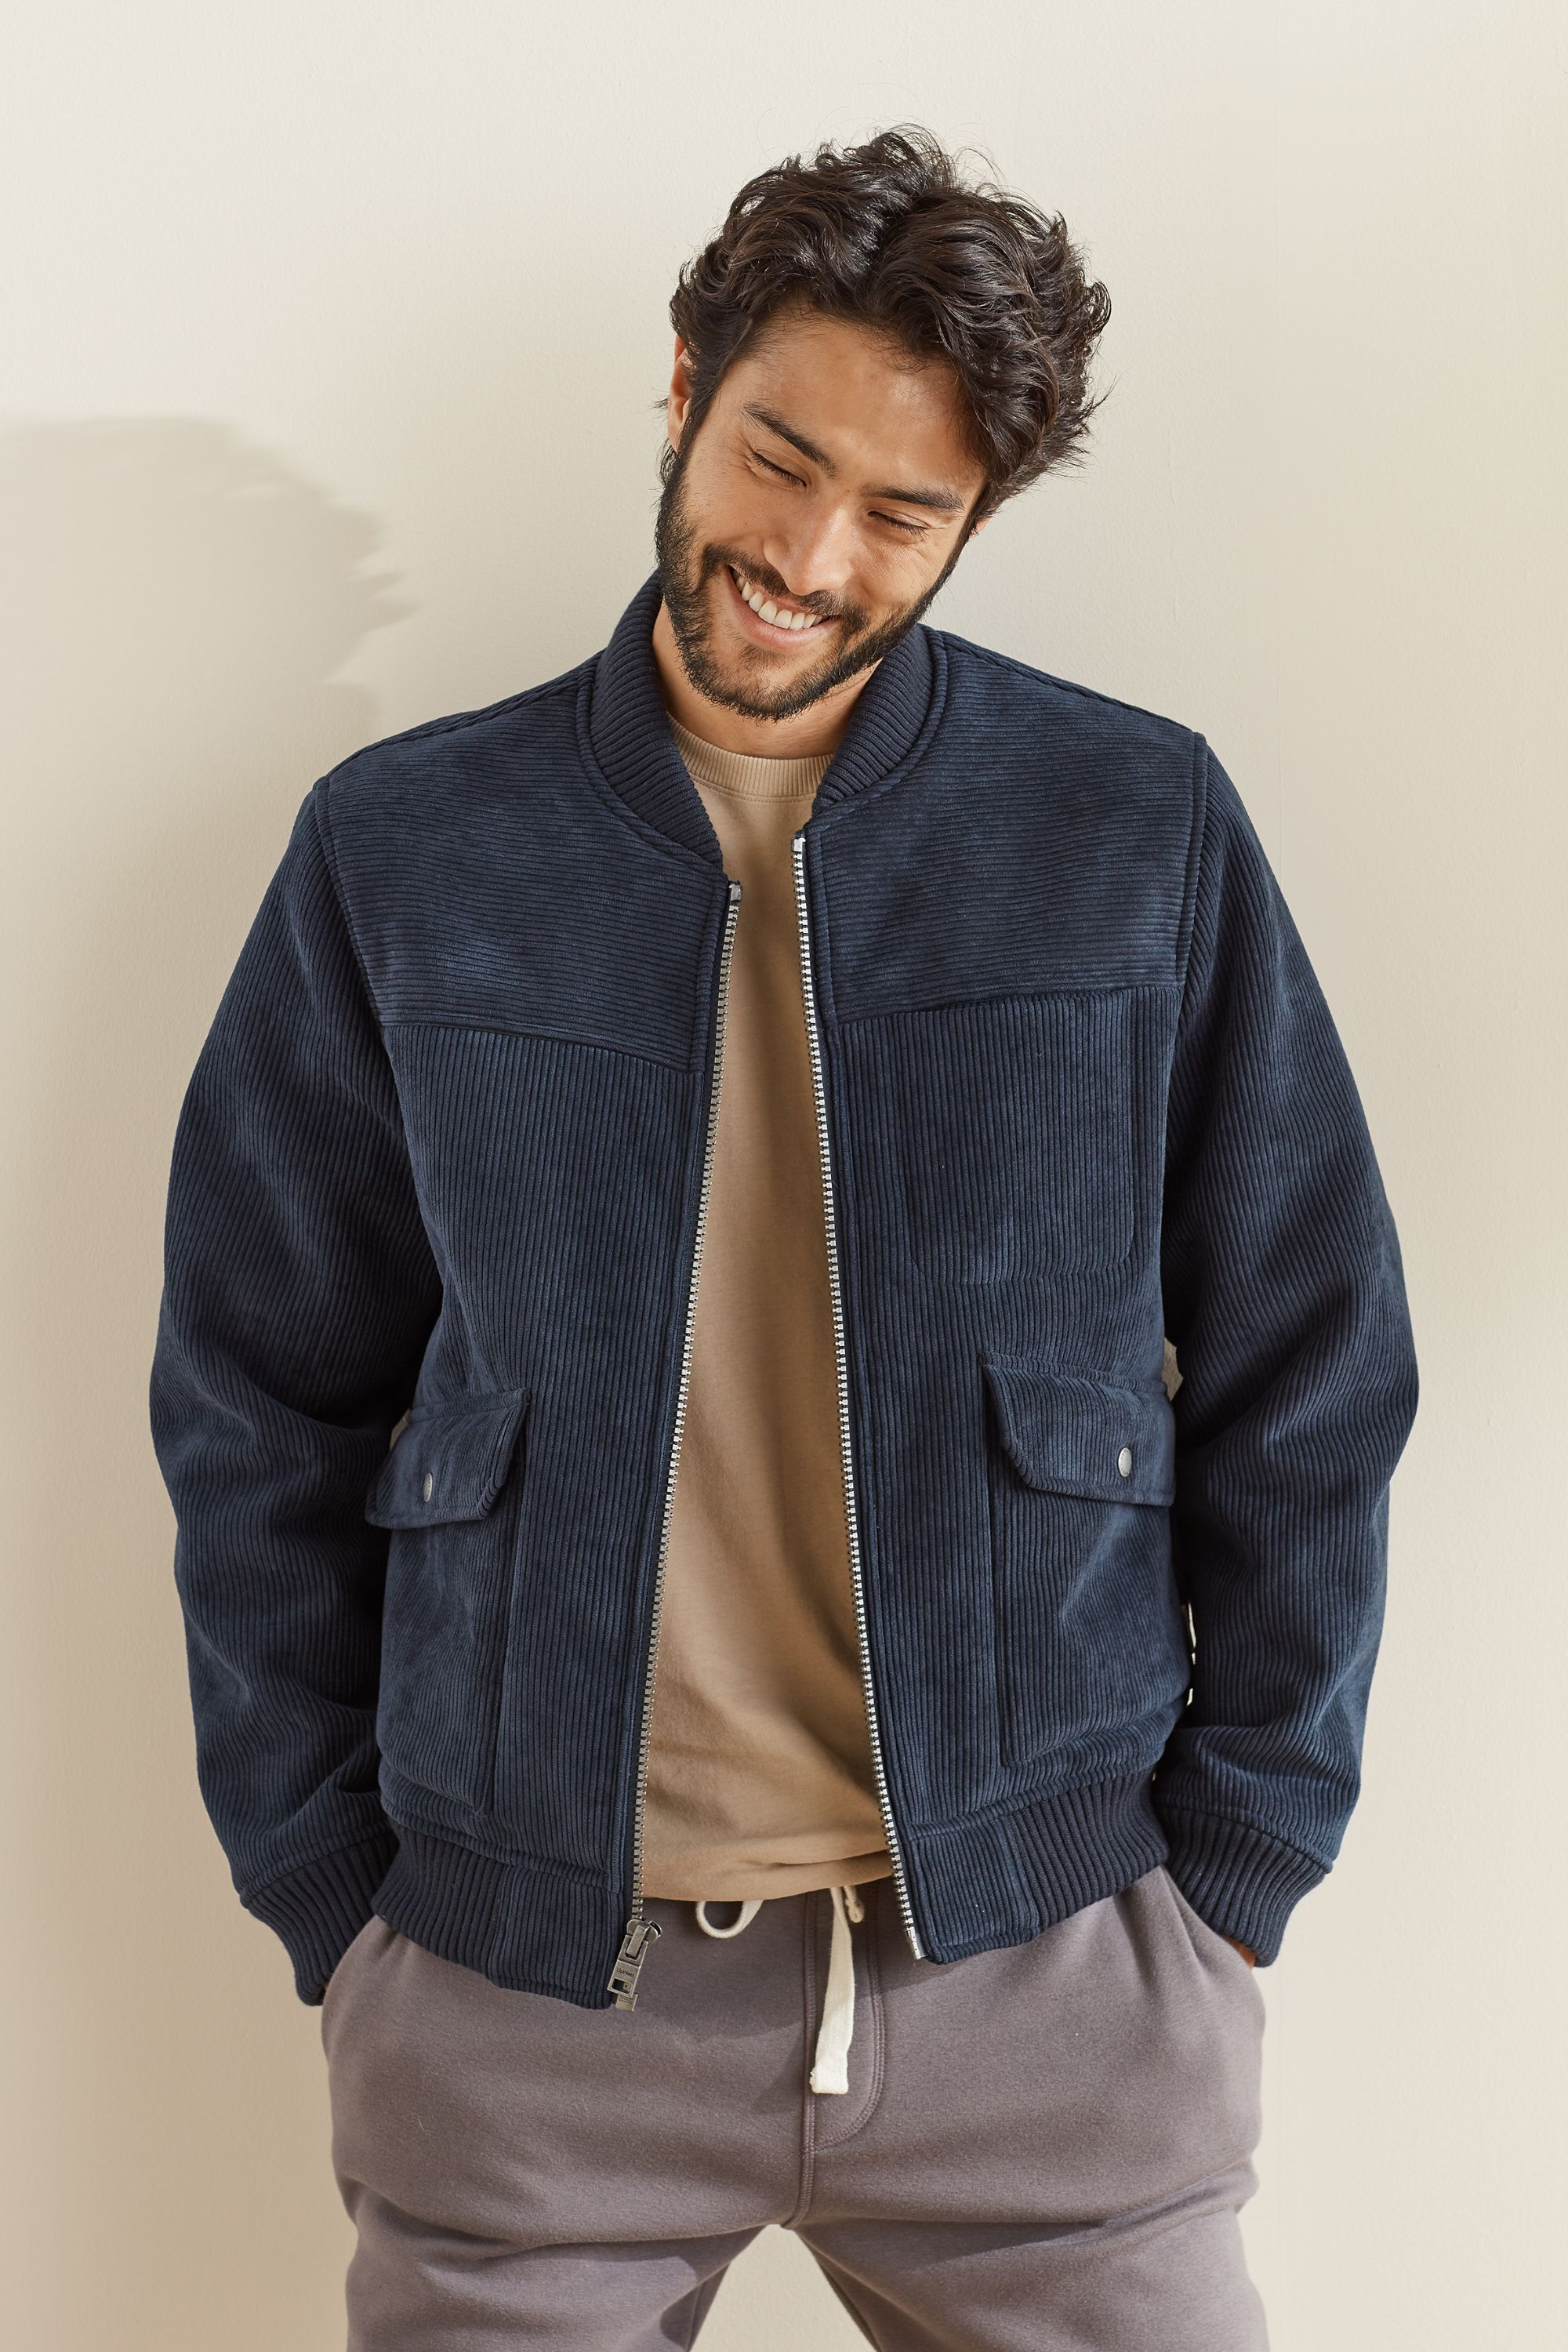 Men S Cord Bomber Jacket Bomber Jacket Outfit Mens Casual Outfits Jackets [ 3000 x 2000 Pixel ]